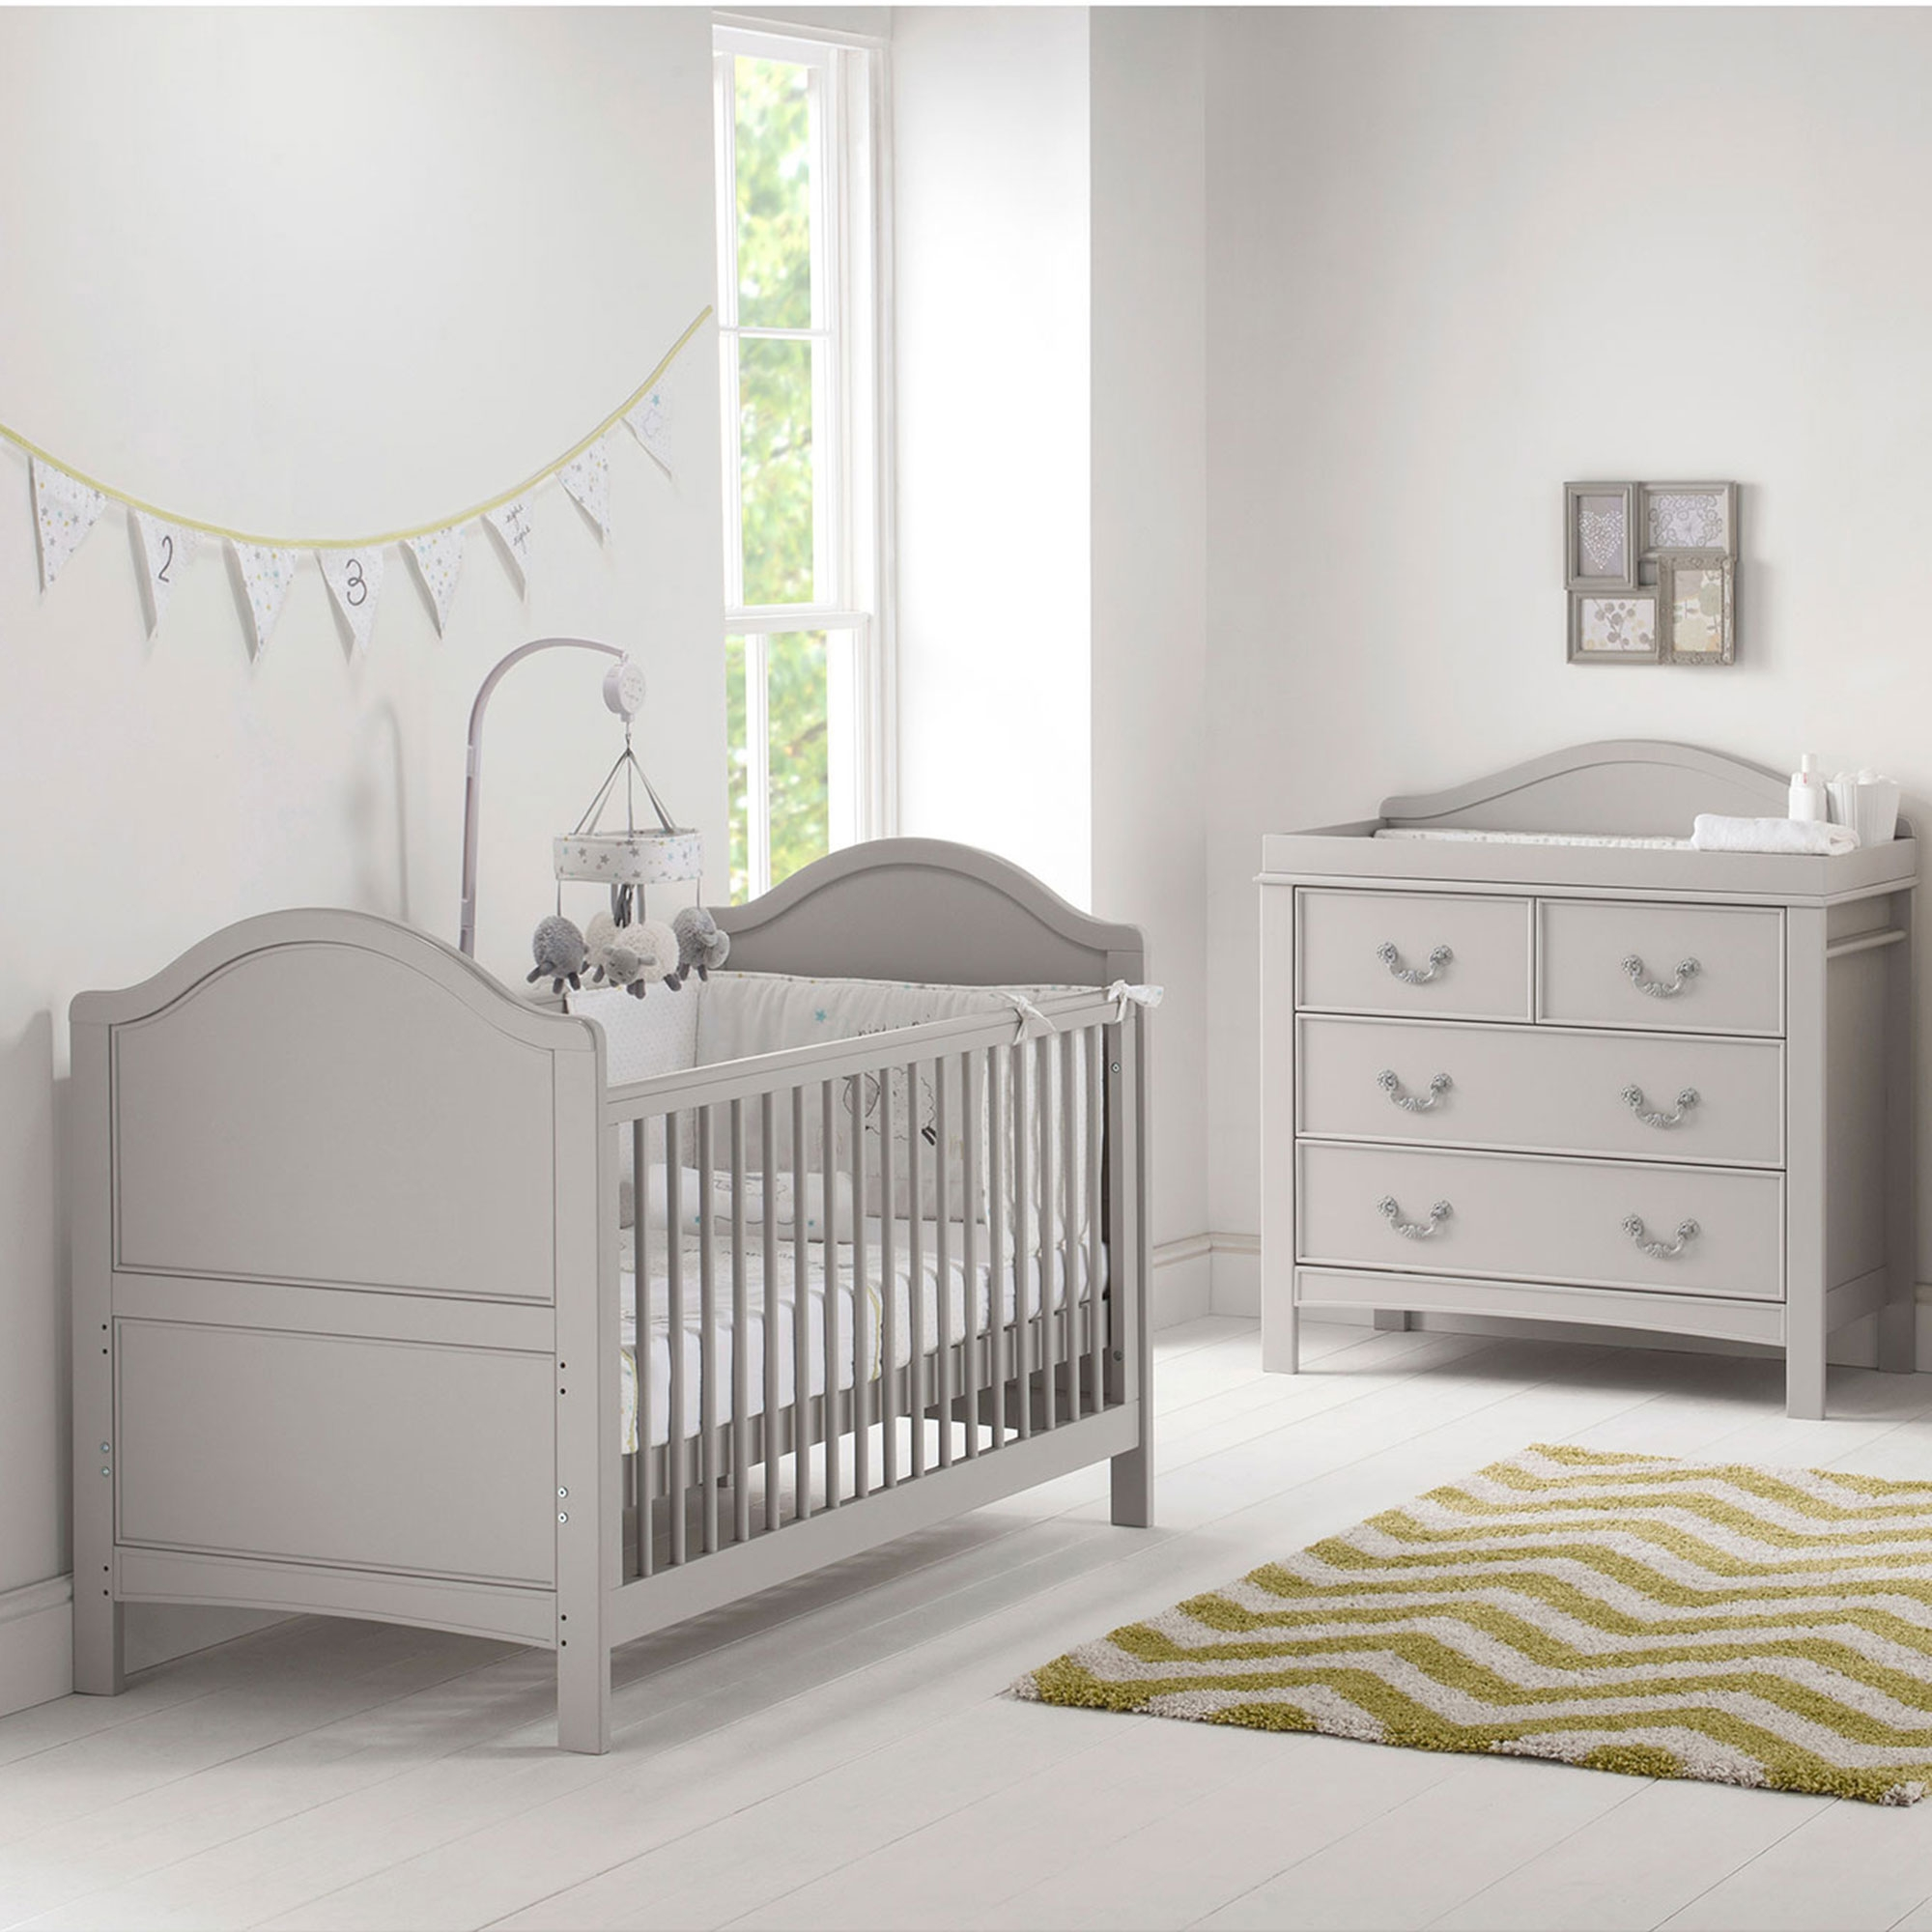 Details About East Coast Nursery Furniture Cot Bed Dresser Toulouse 2 Piece Room Set In Grey